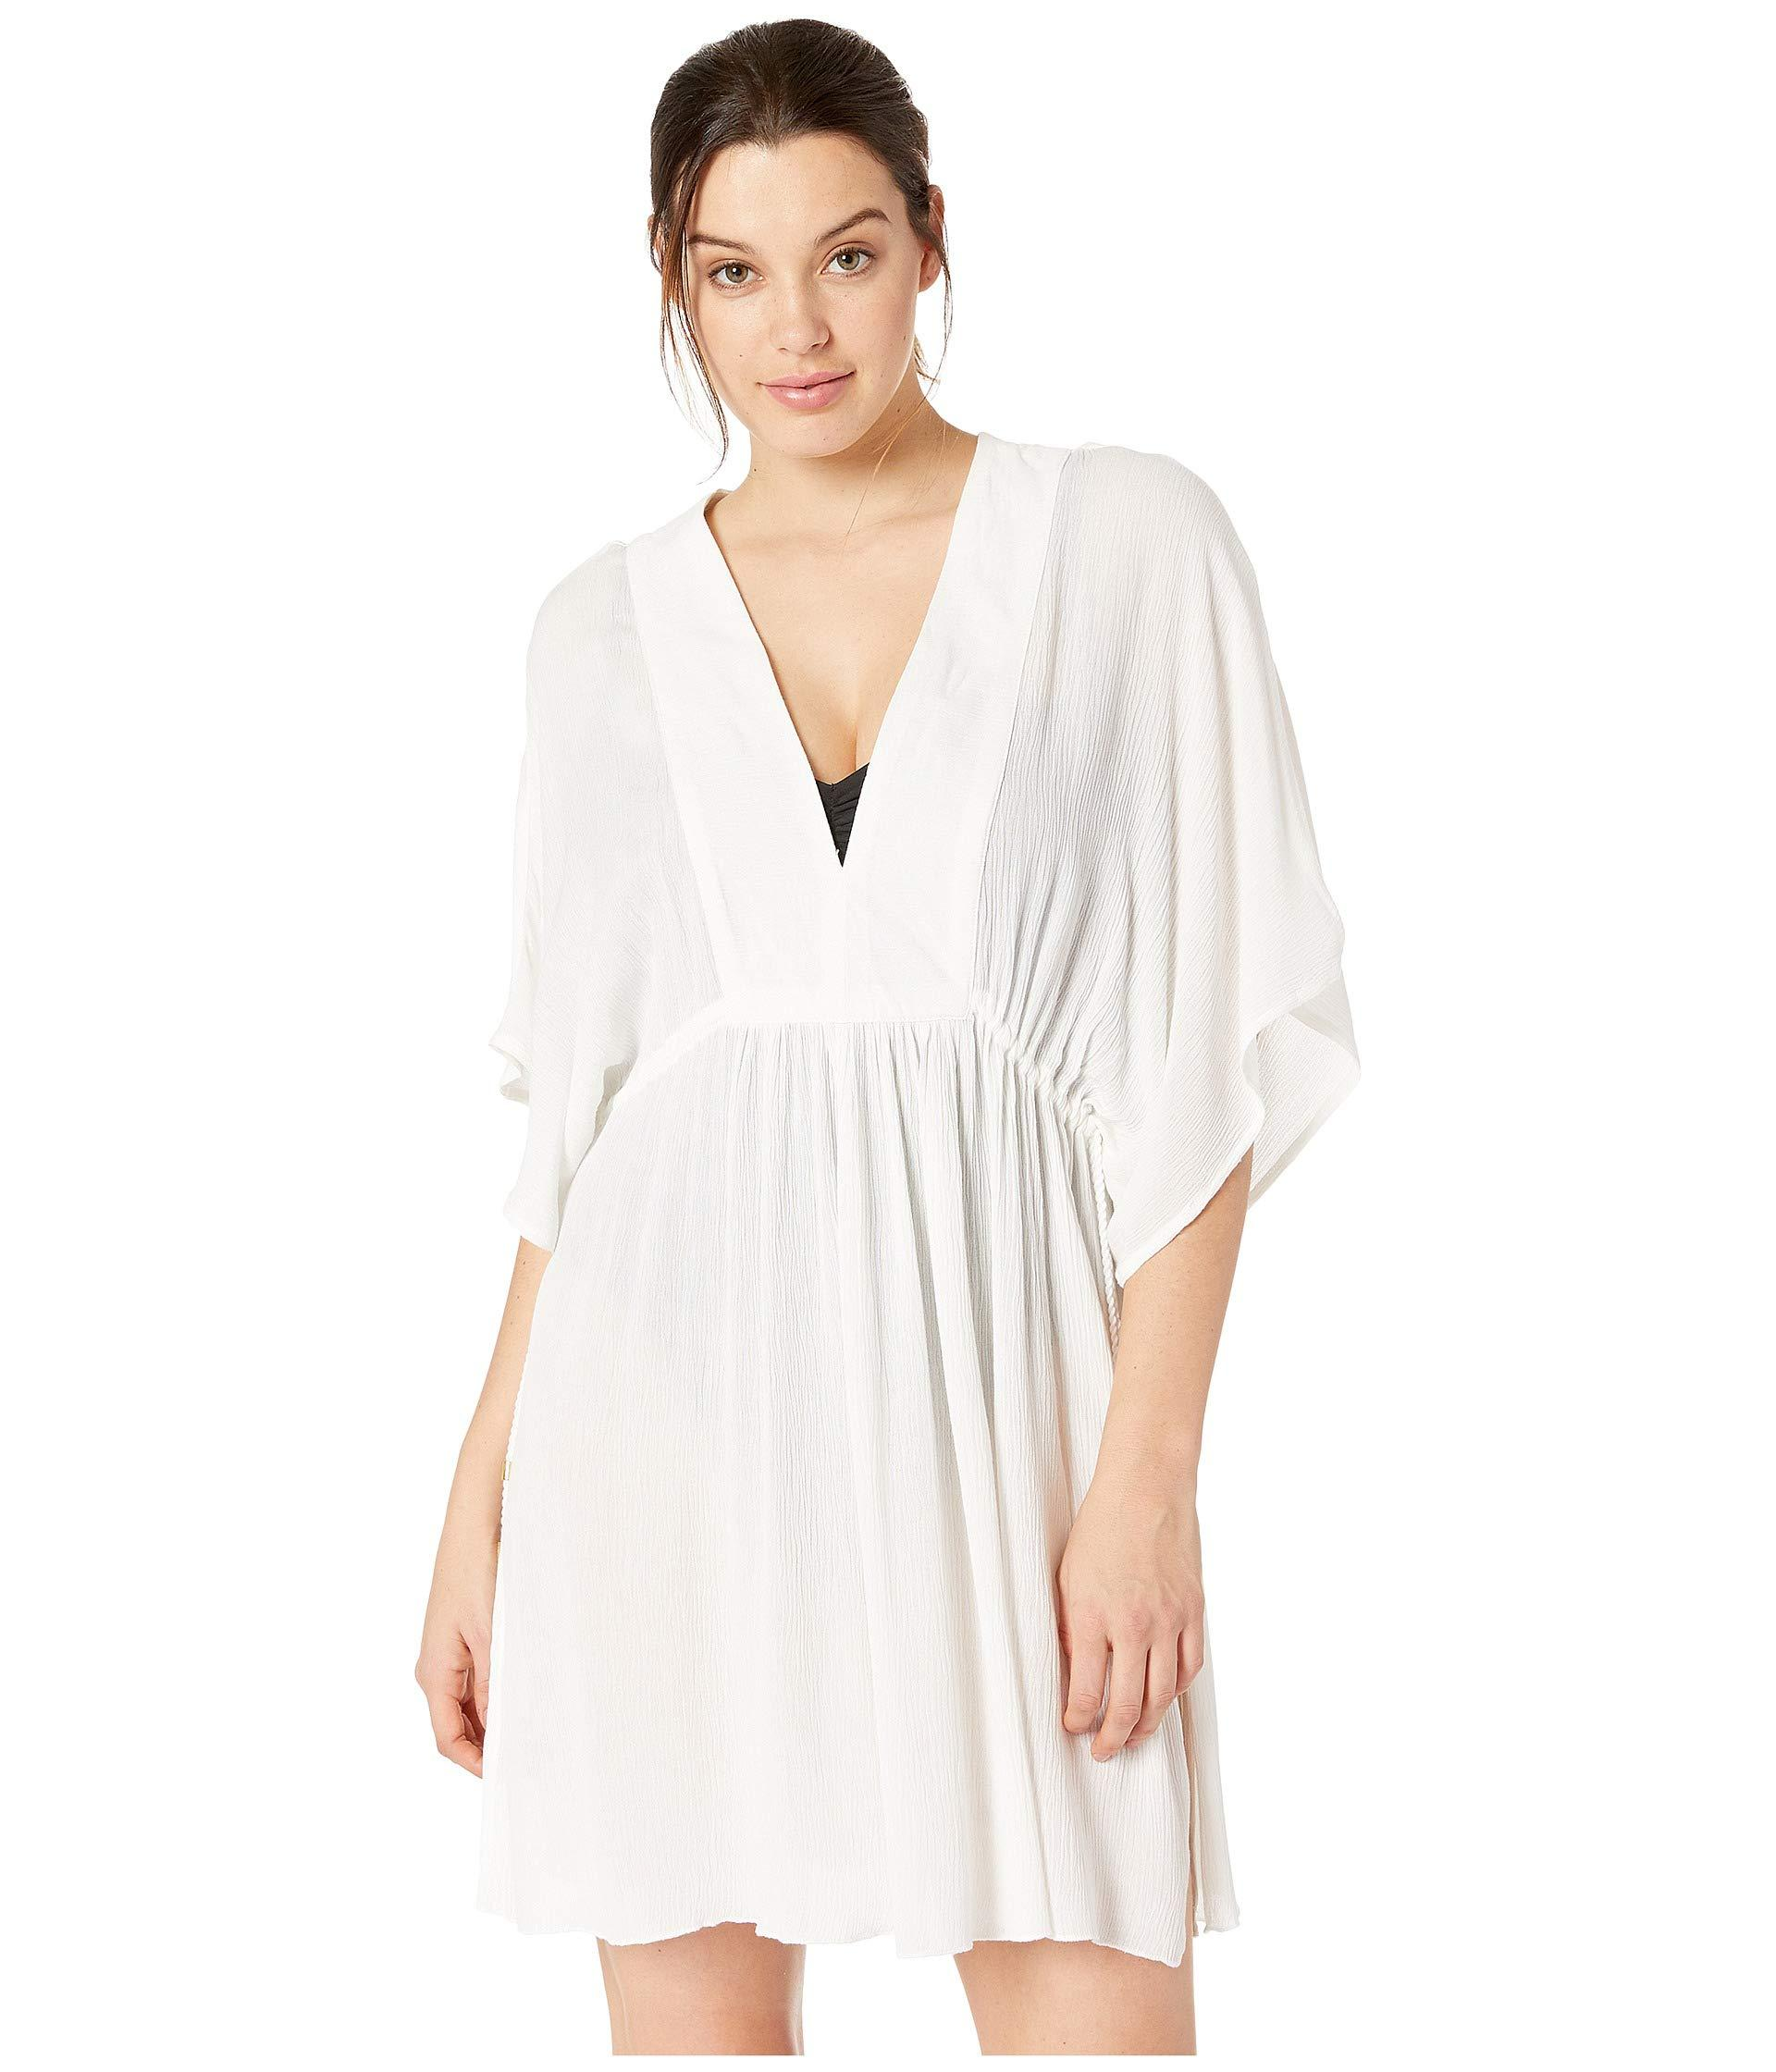 cddbc72082215 Lyst - Lauren by Ralph Lauren Crinkle Rayon Cover-up Tunic Dress ...